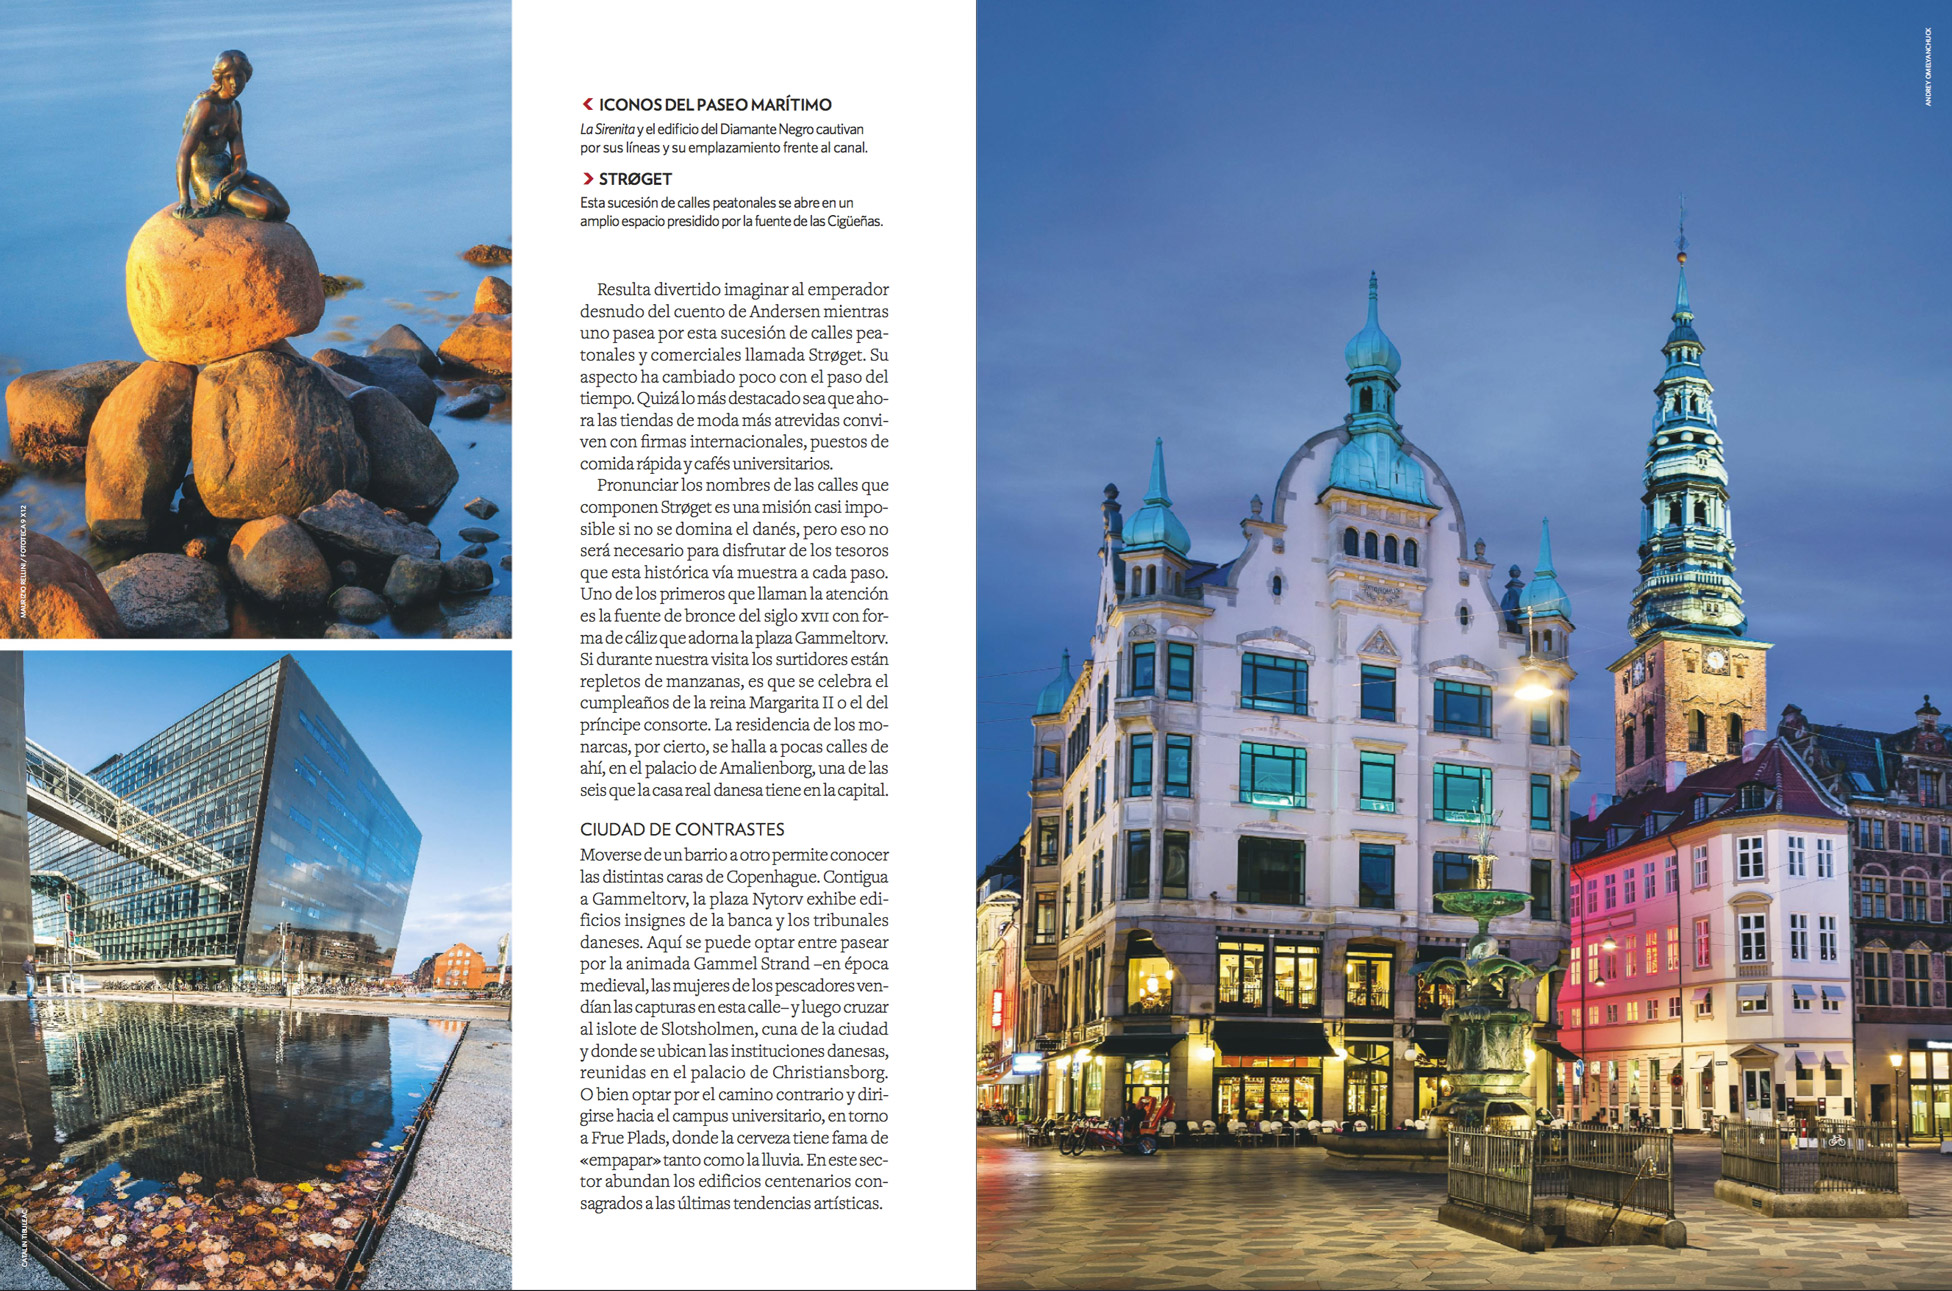 Amagertorv Square and Stork Fountain in the Old Town of Copenhagen, Denmark published in National Geographic Travel (Spain) #183